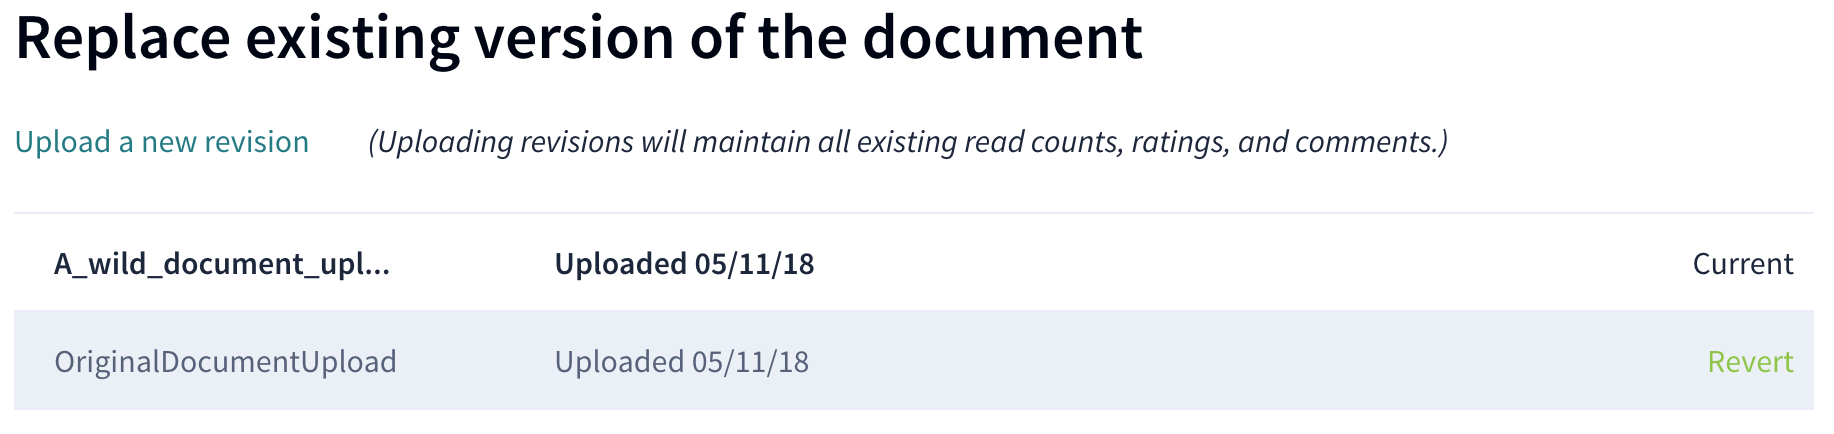 Uploading_documents_-_Revision_history.png